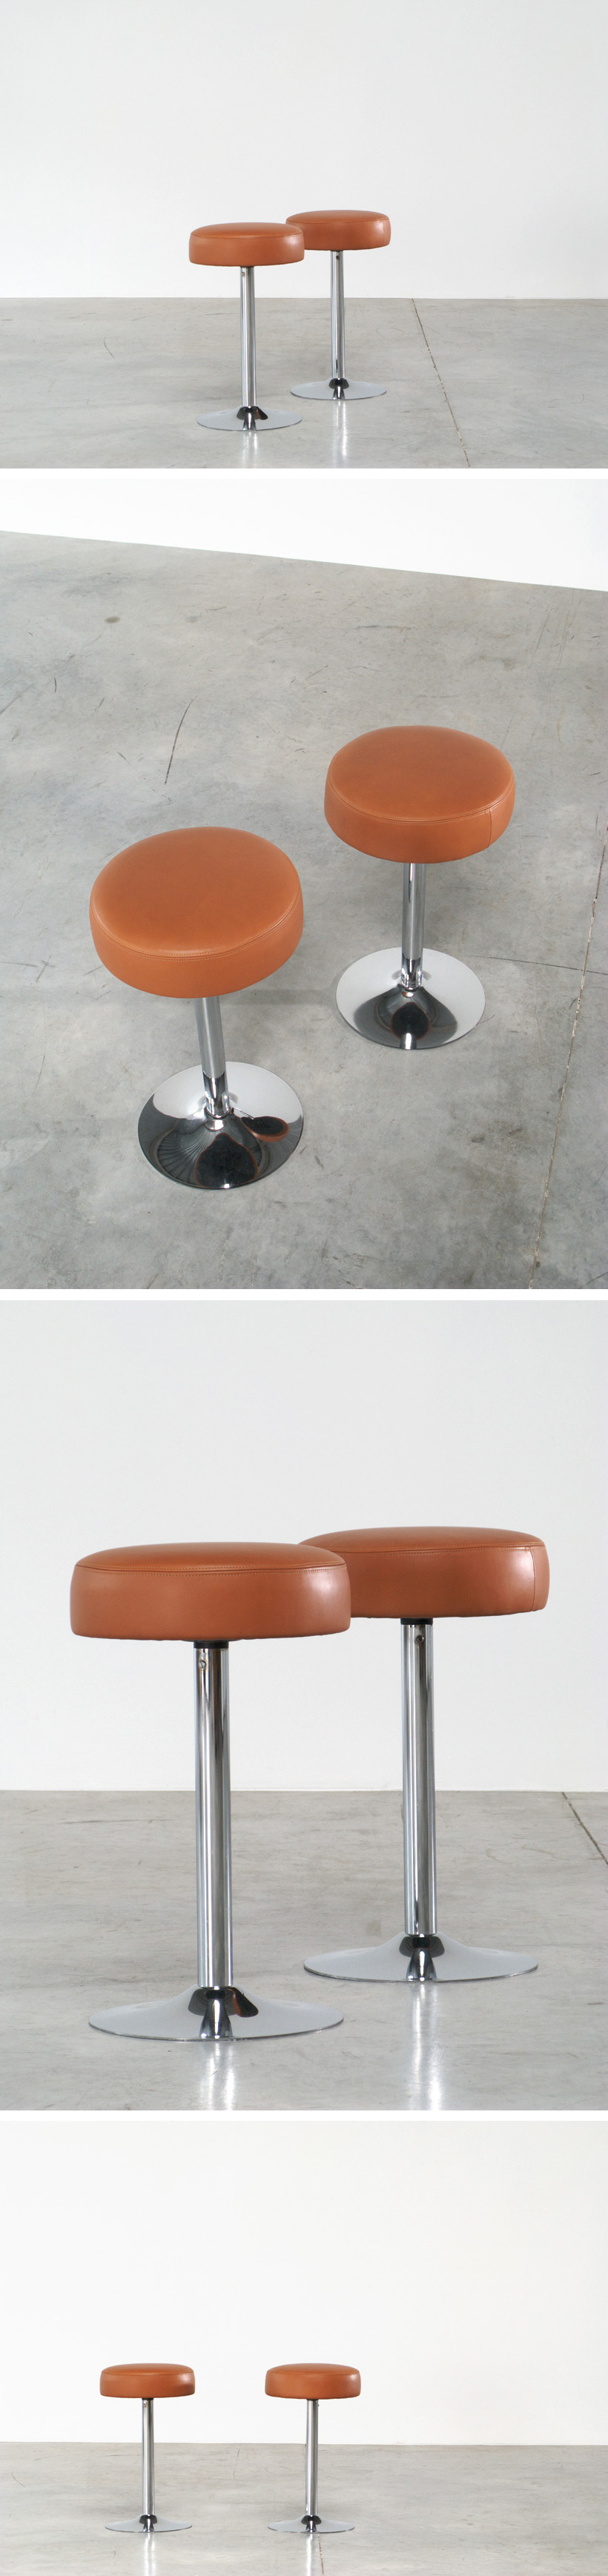 2 Chrome Bar Stools in Cognac Leather Large